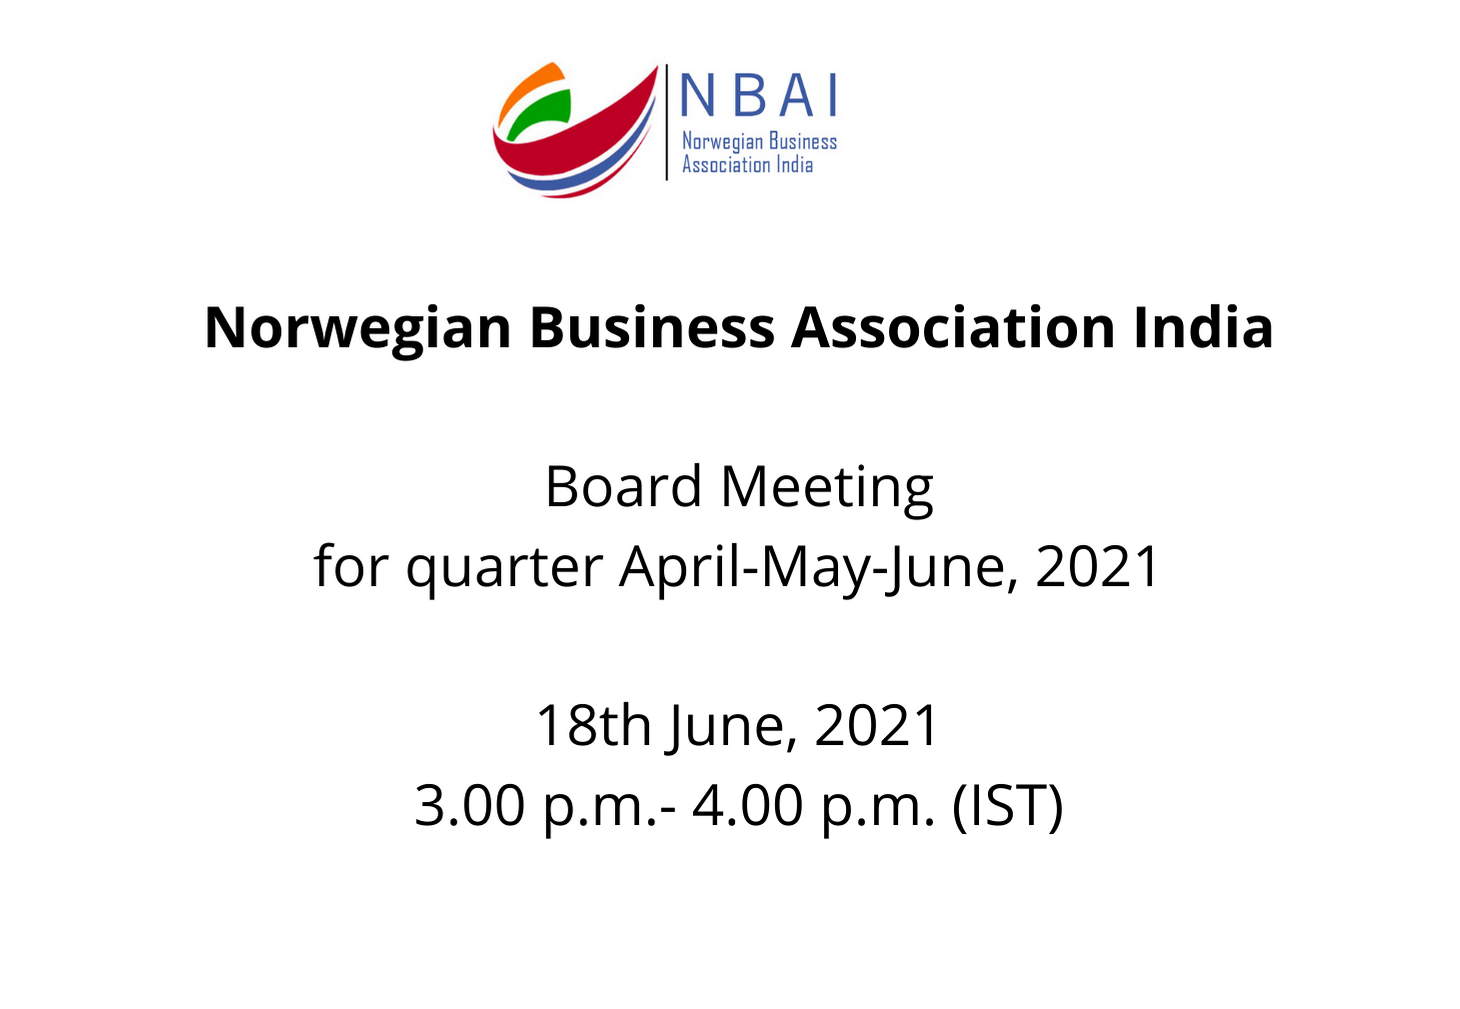 NBAI – BOARD MEETING FOR QTR. APRIL-MAY-JUNE, 2021